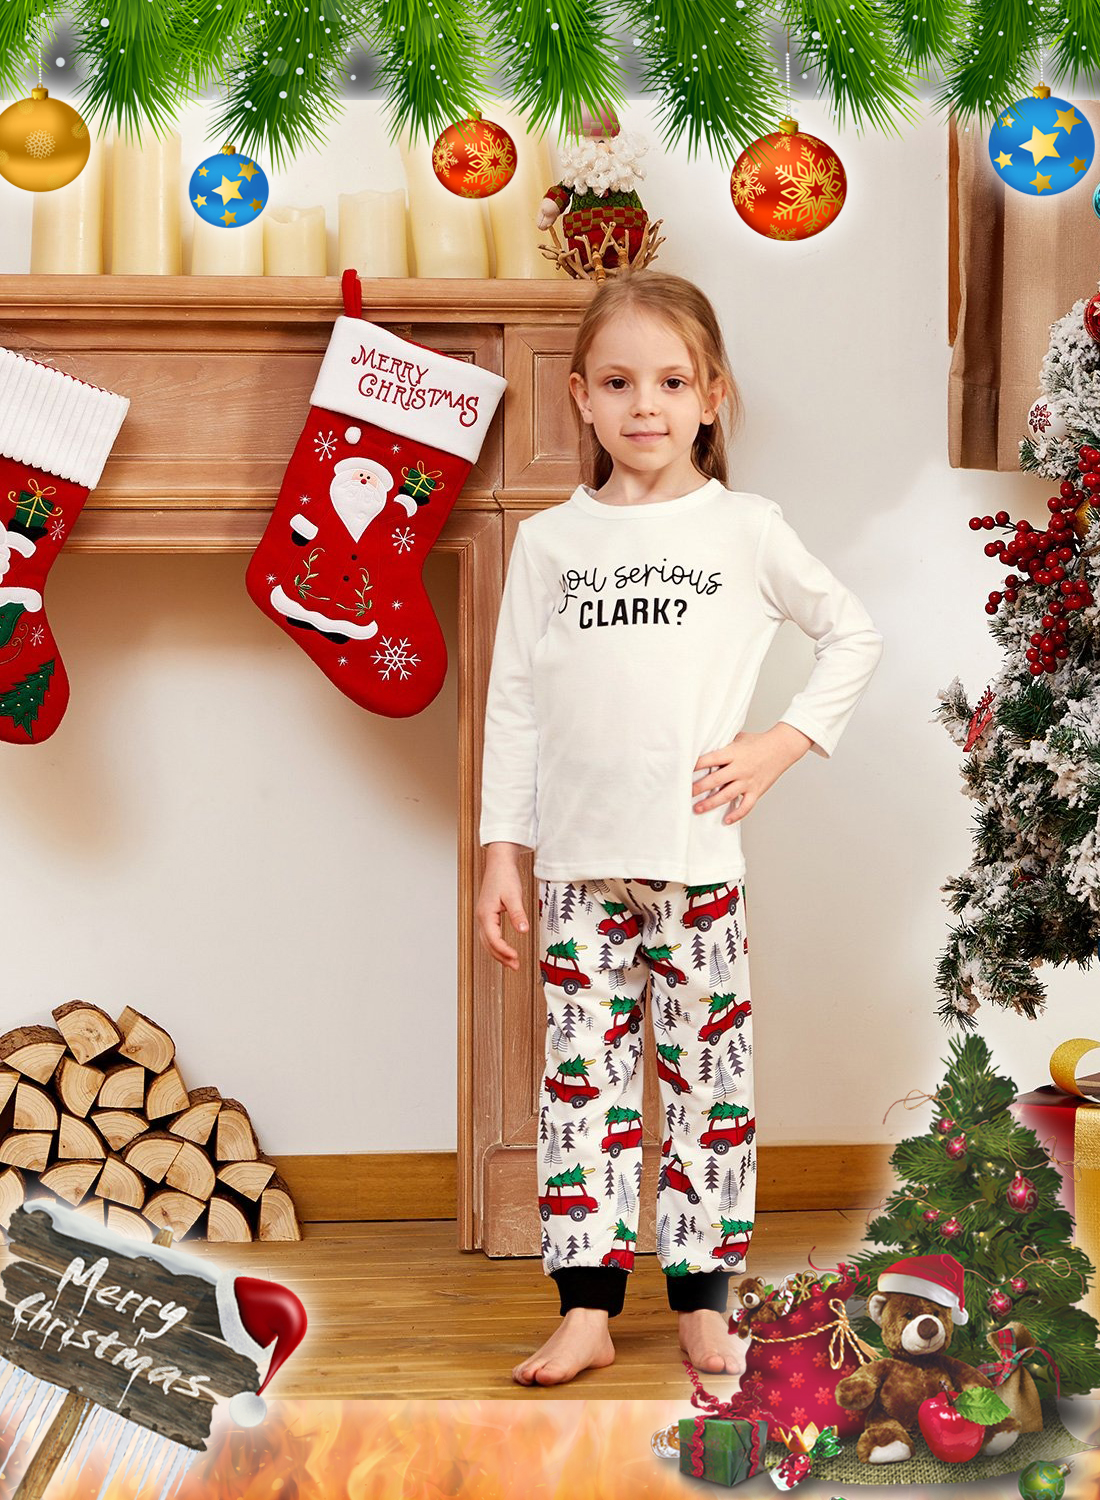 You Serious CLARK Letter Print Family Matching Pajamas Sets 3